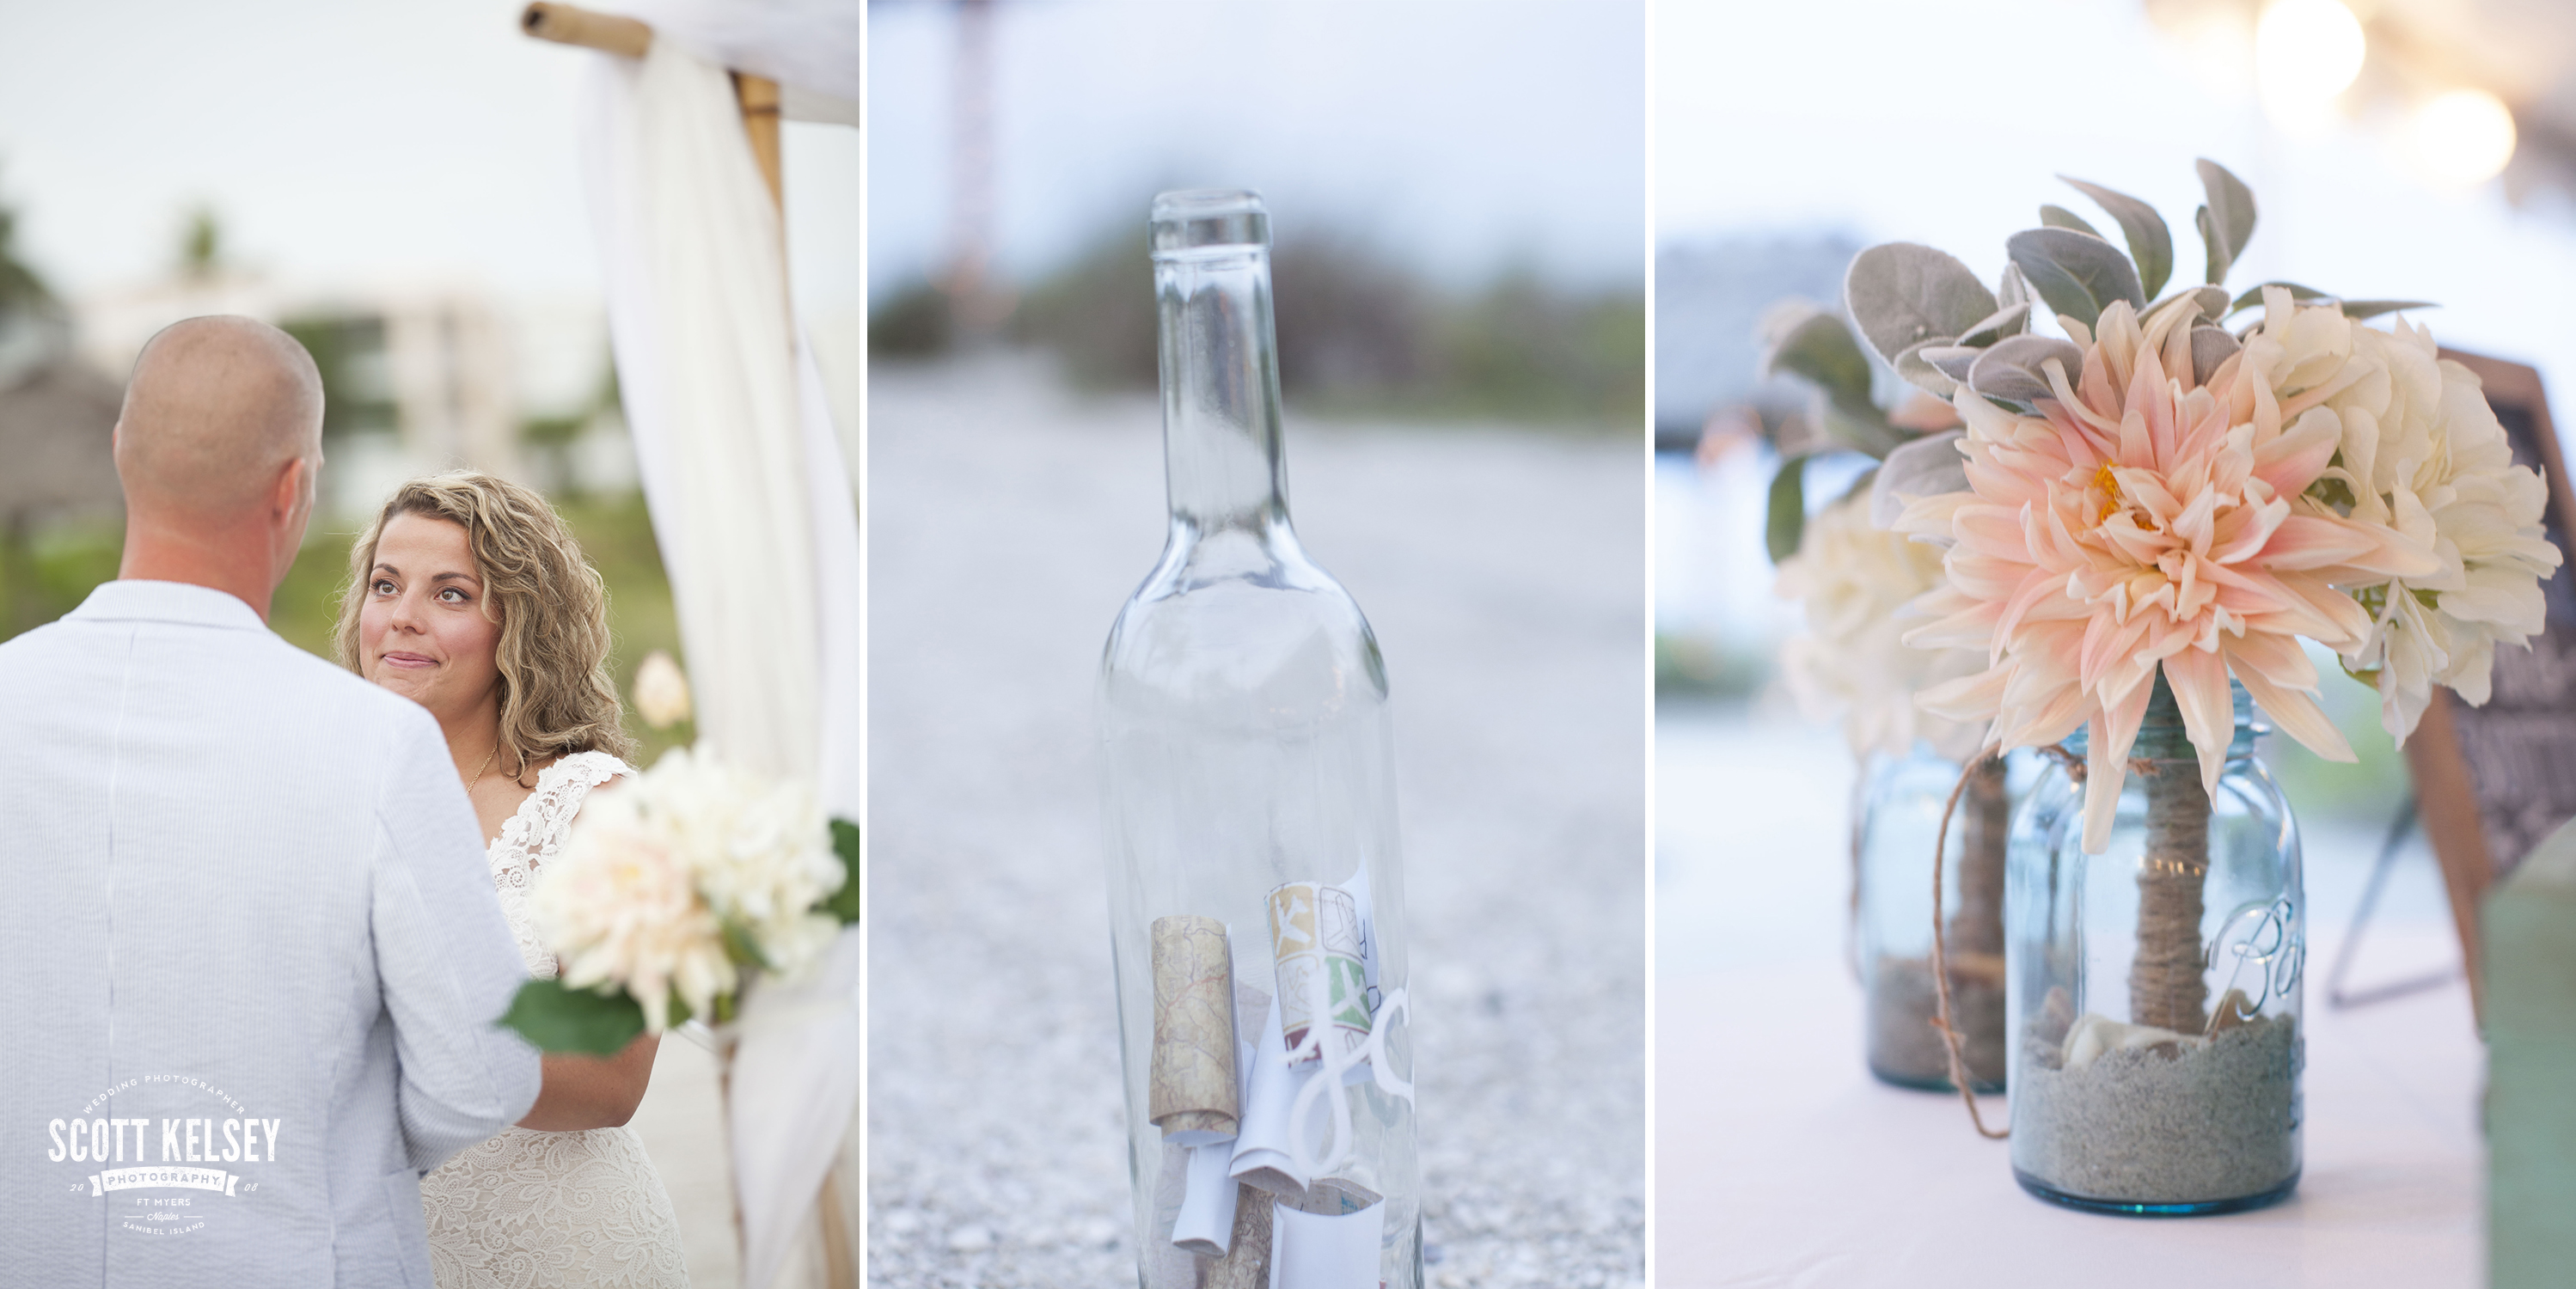 boho-wedding-watersideinn-sanibel-scott-kelsey-025